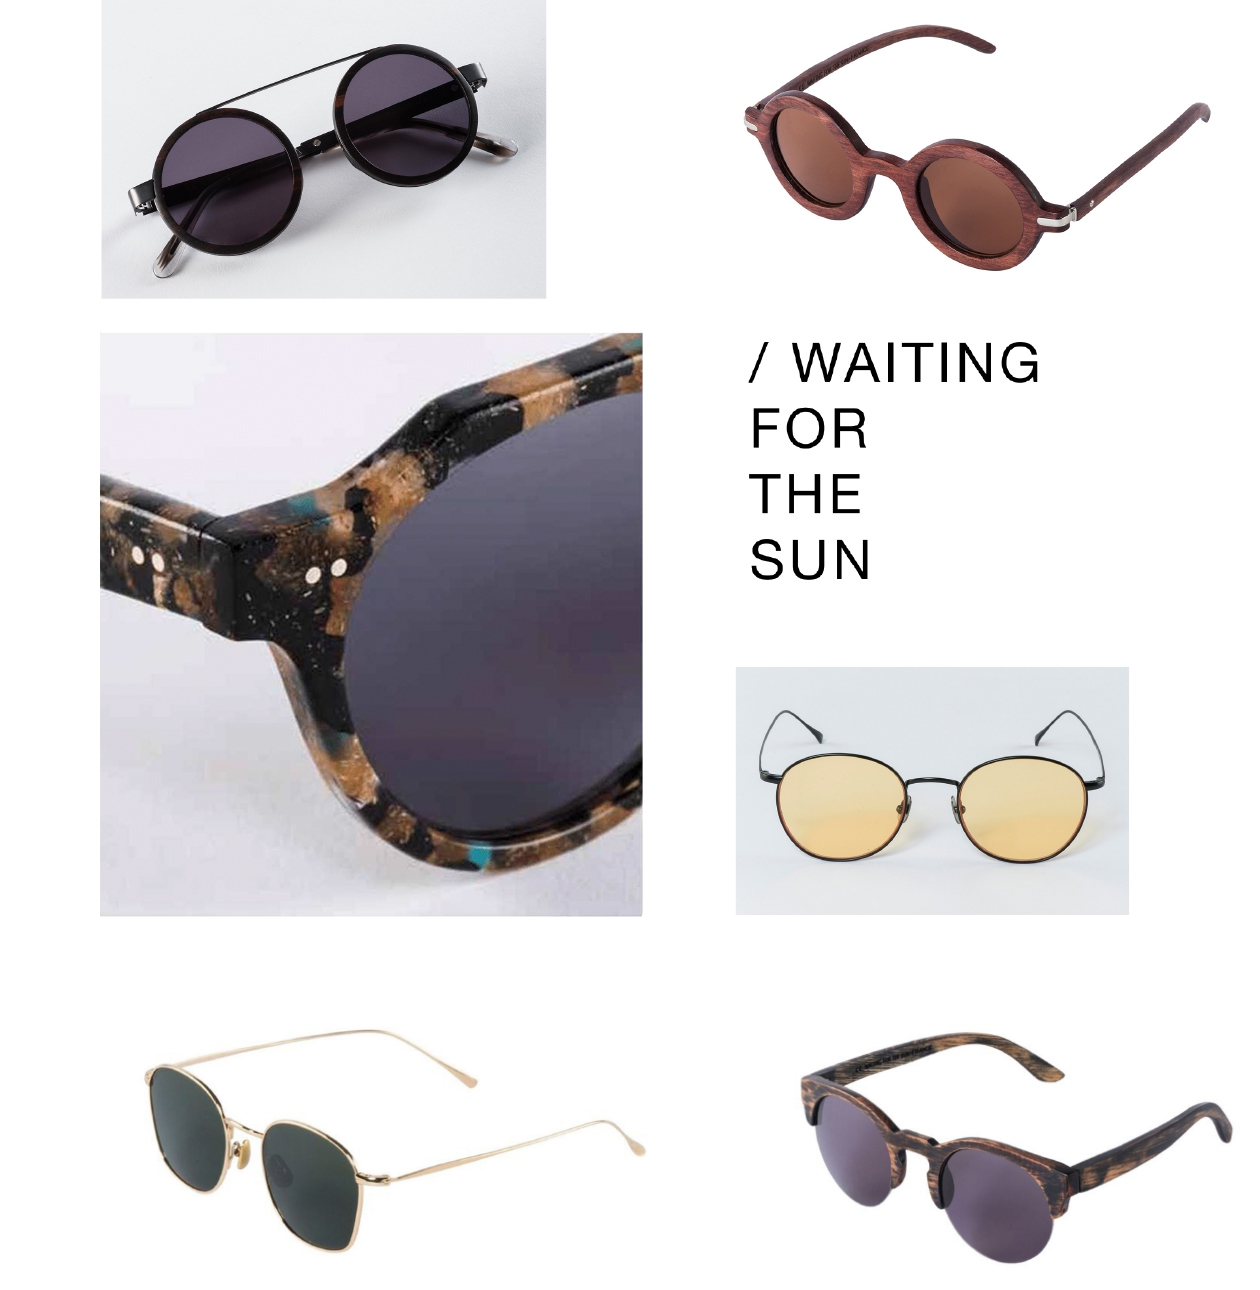 Neu bei AVESU! | Sonnenbrillen von WAITING FOR THE SUN | Shop online!